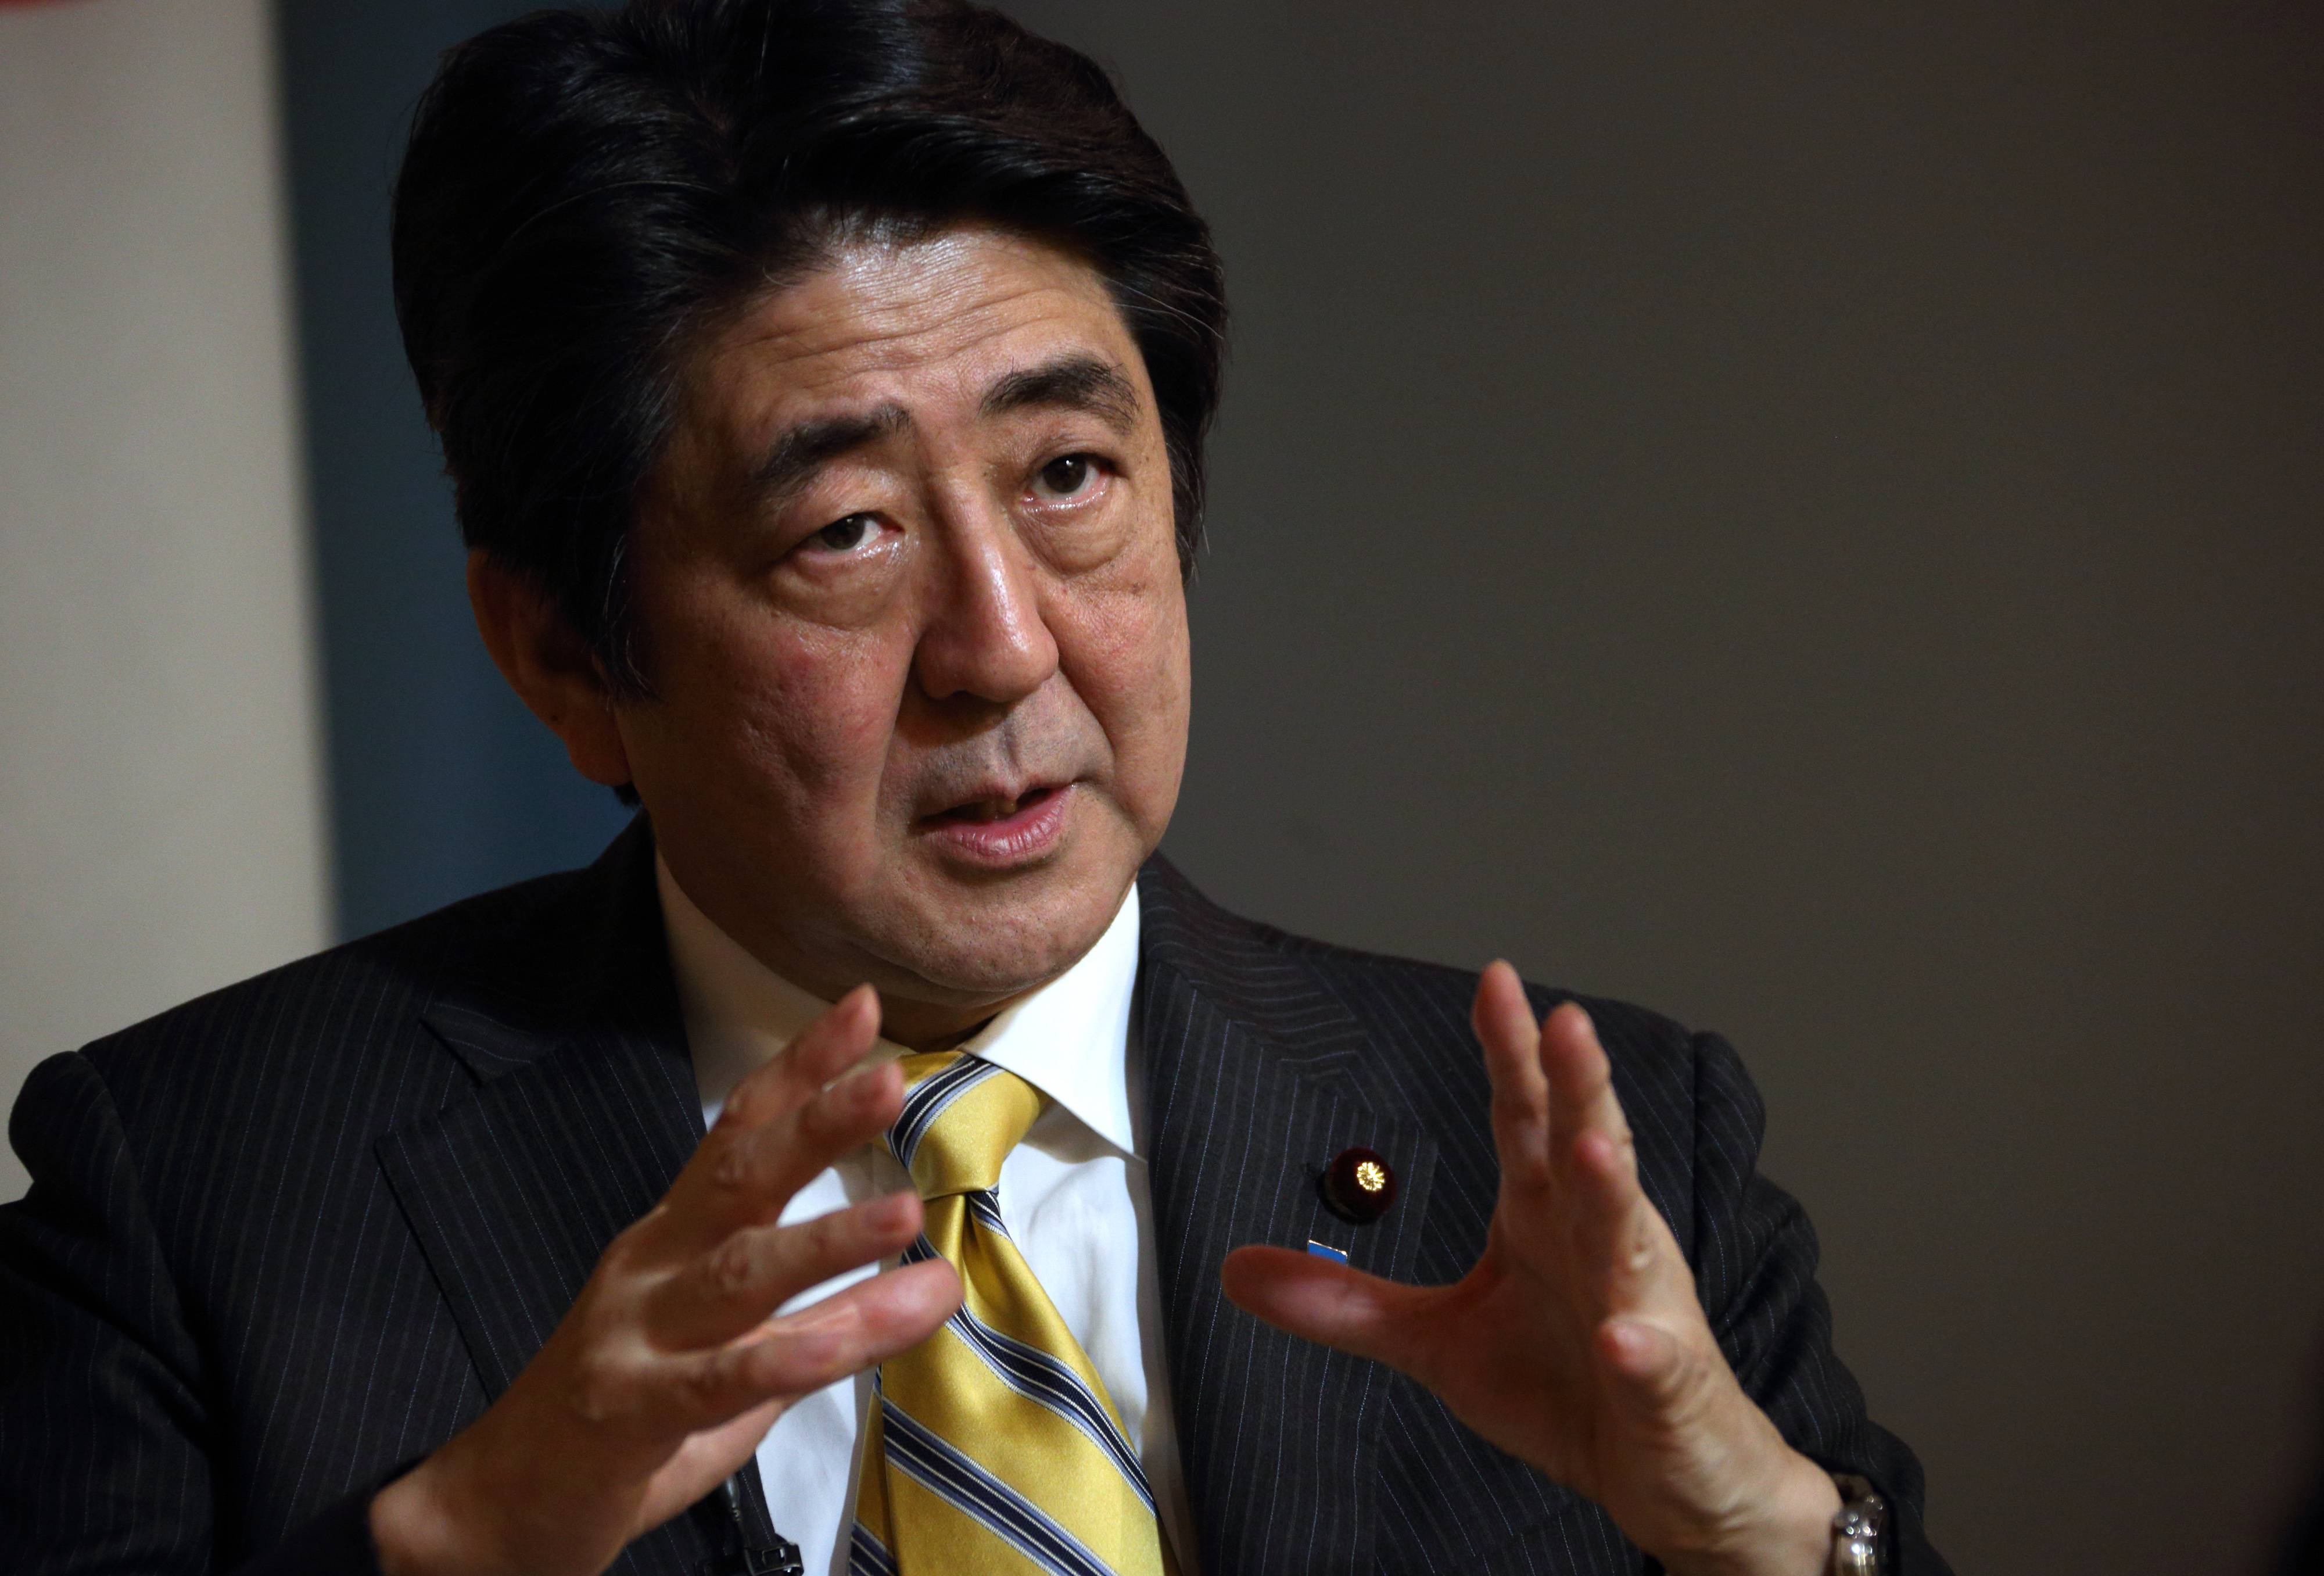 Abe's grand plan to revive Japan's economic power